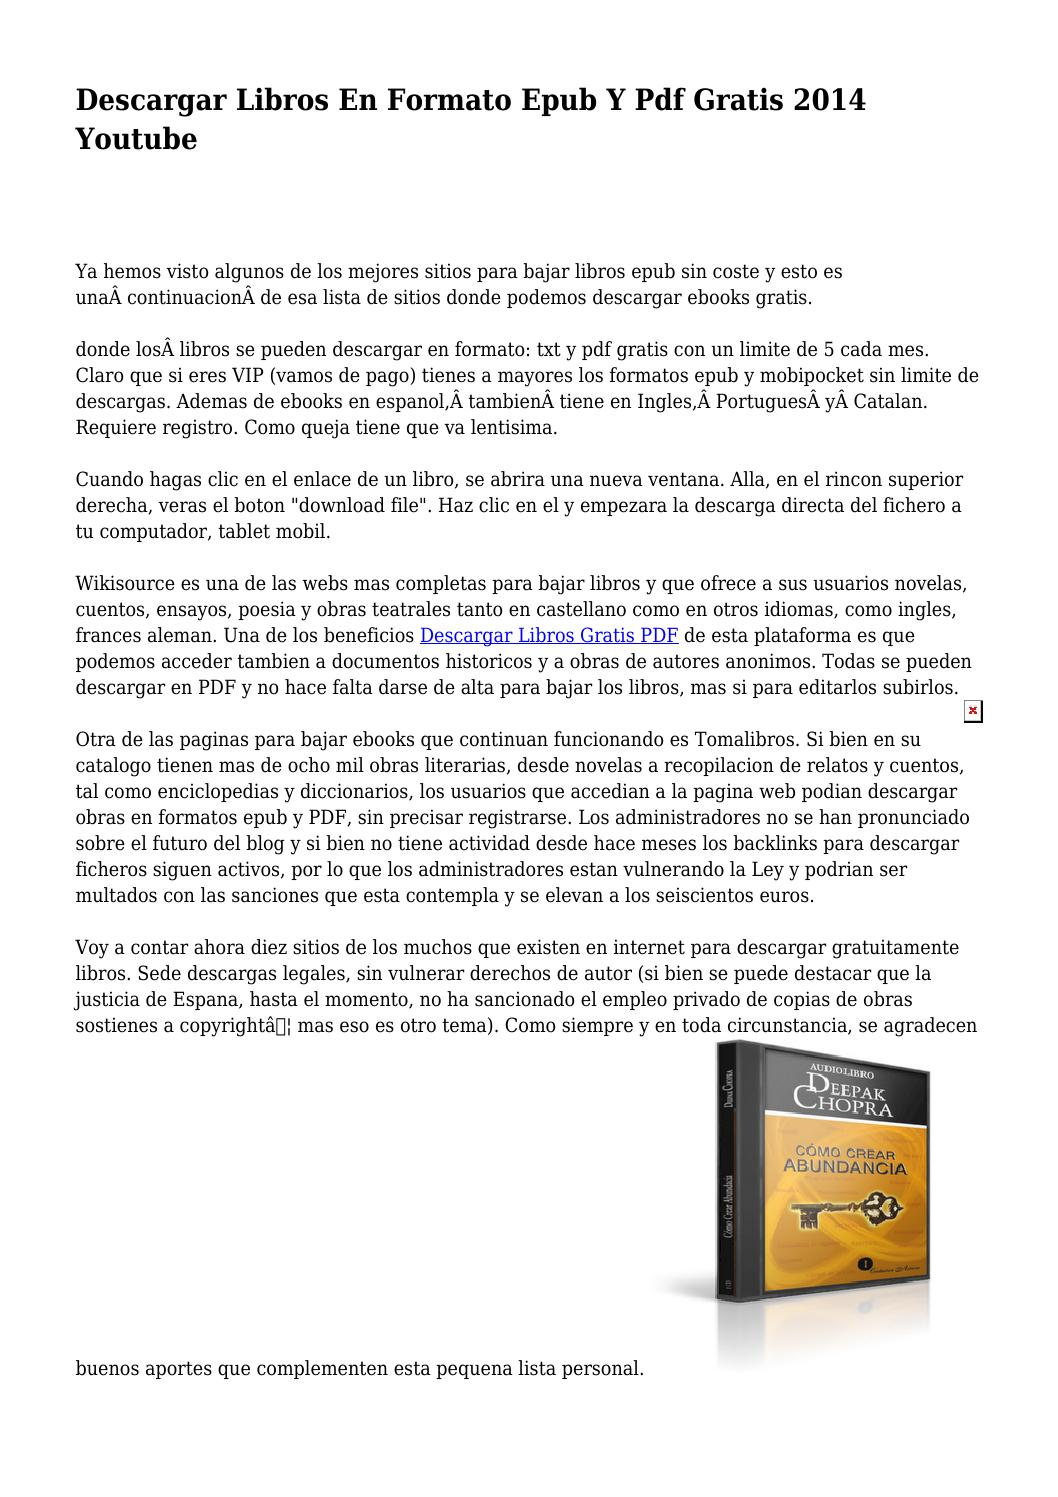 Paginas Para Bajar Libros Para Ebook Gratis Descargar Libros En Formato Epub Y Pdf Gratis 2014 Youtube By